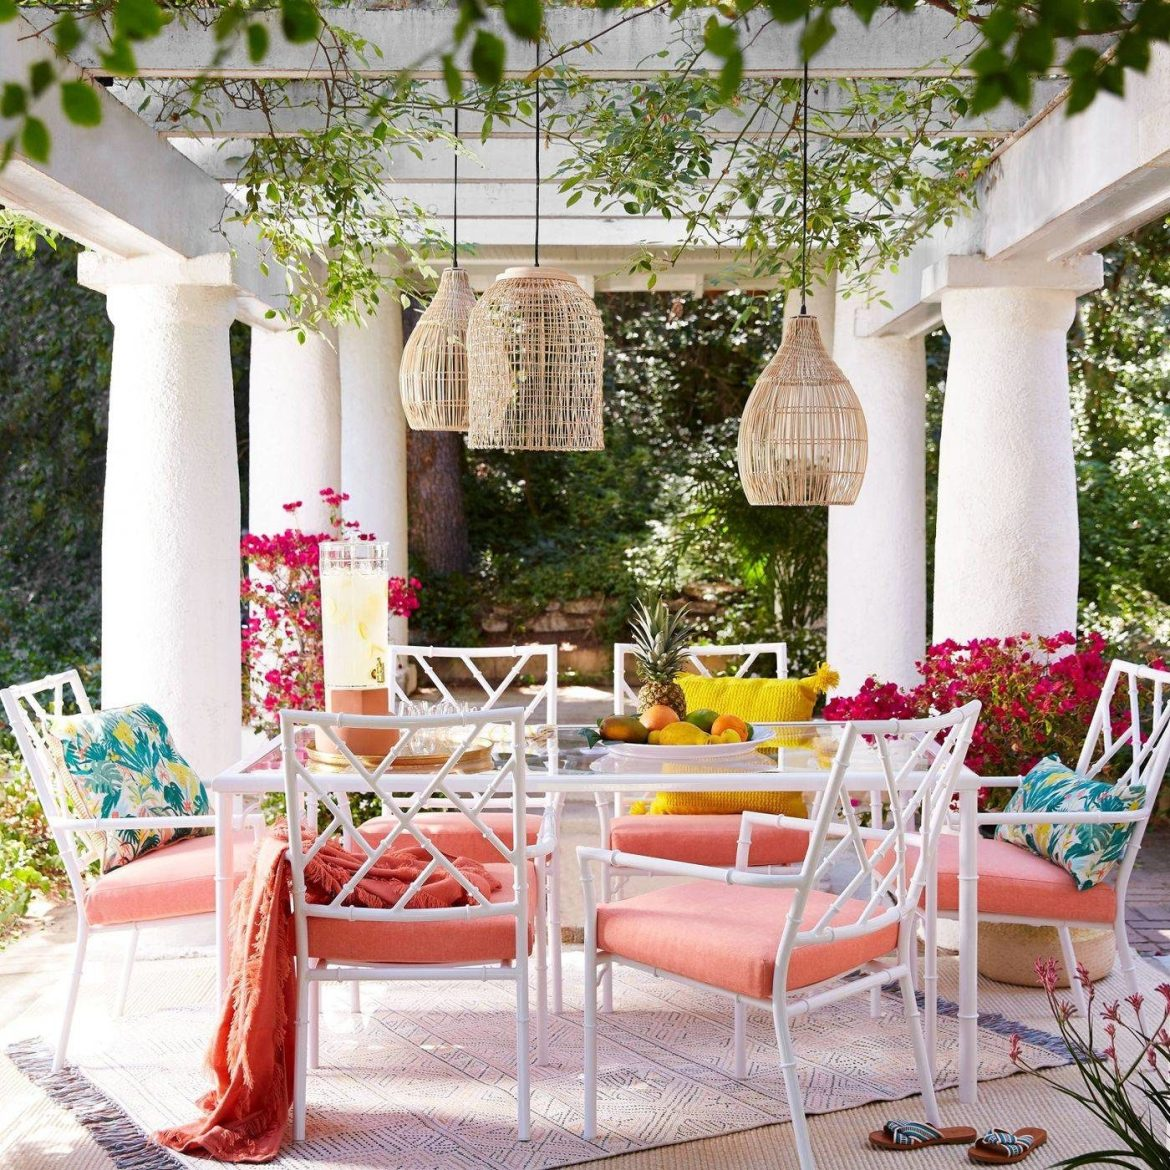 Chic Feminine White Peach Southern Pink Colorful Outdoor Patio Space Rattan Pendant Light Fringe Area Rug